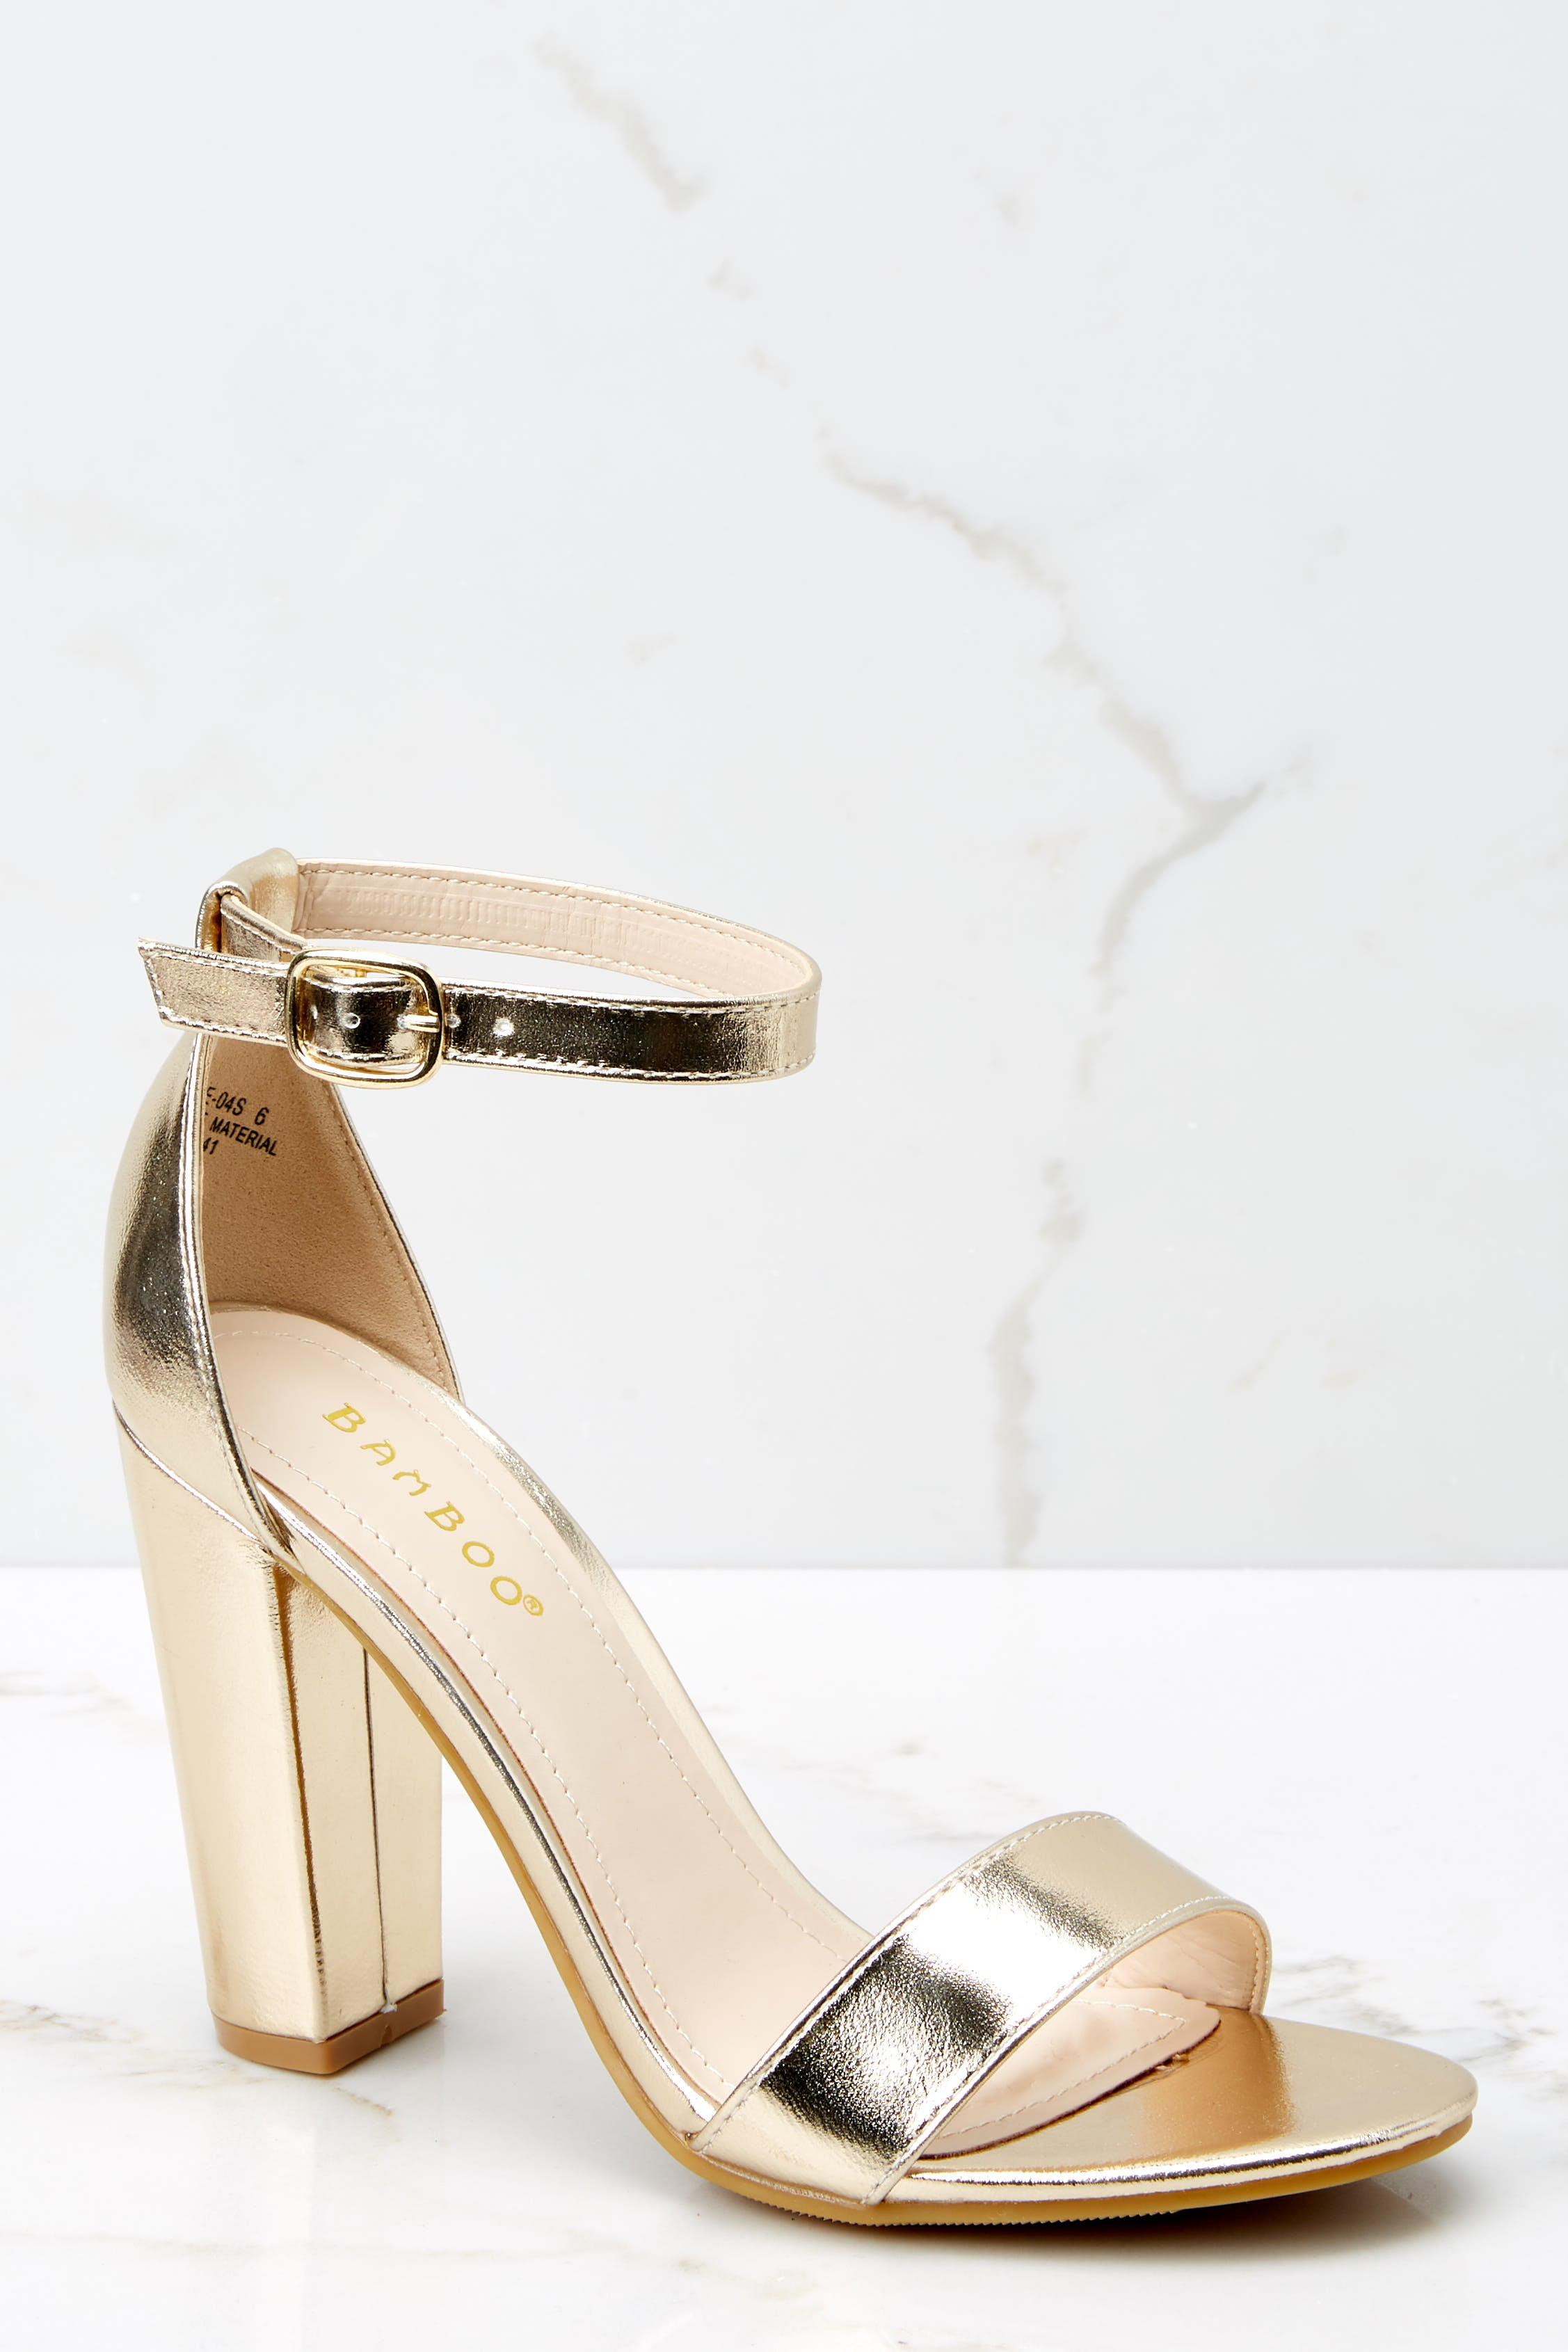 2 Plans To Dance Gold Ankle Strap Heels at reddress.com